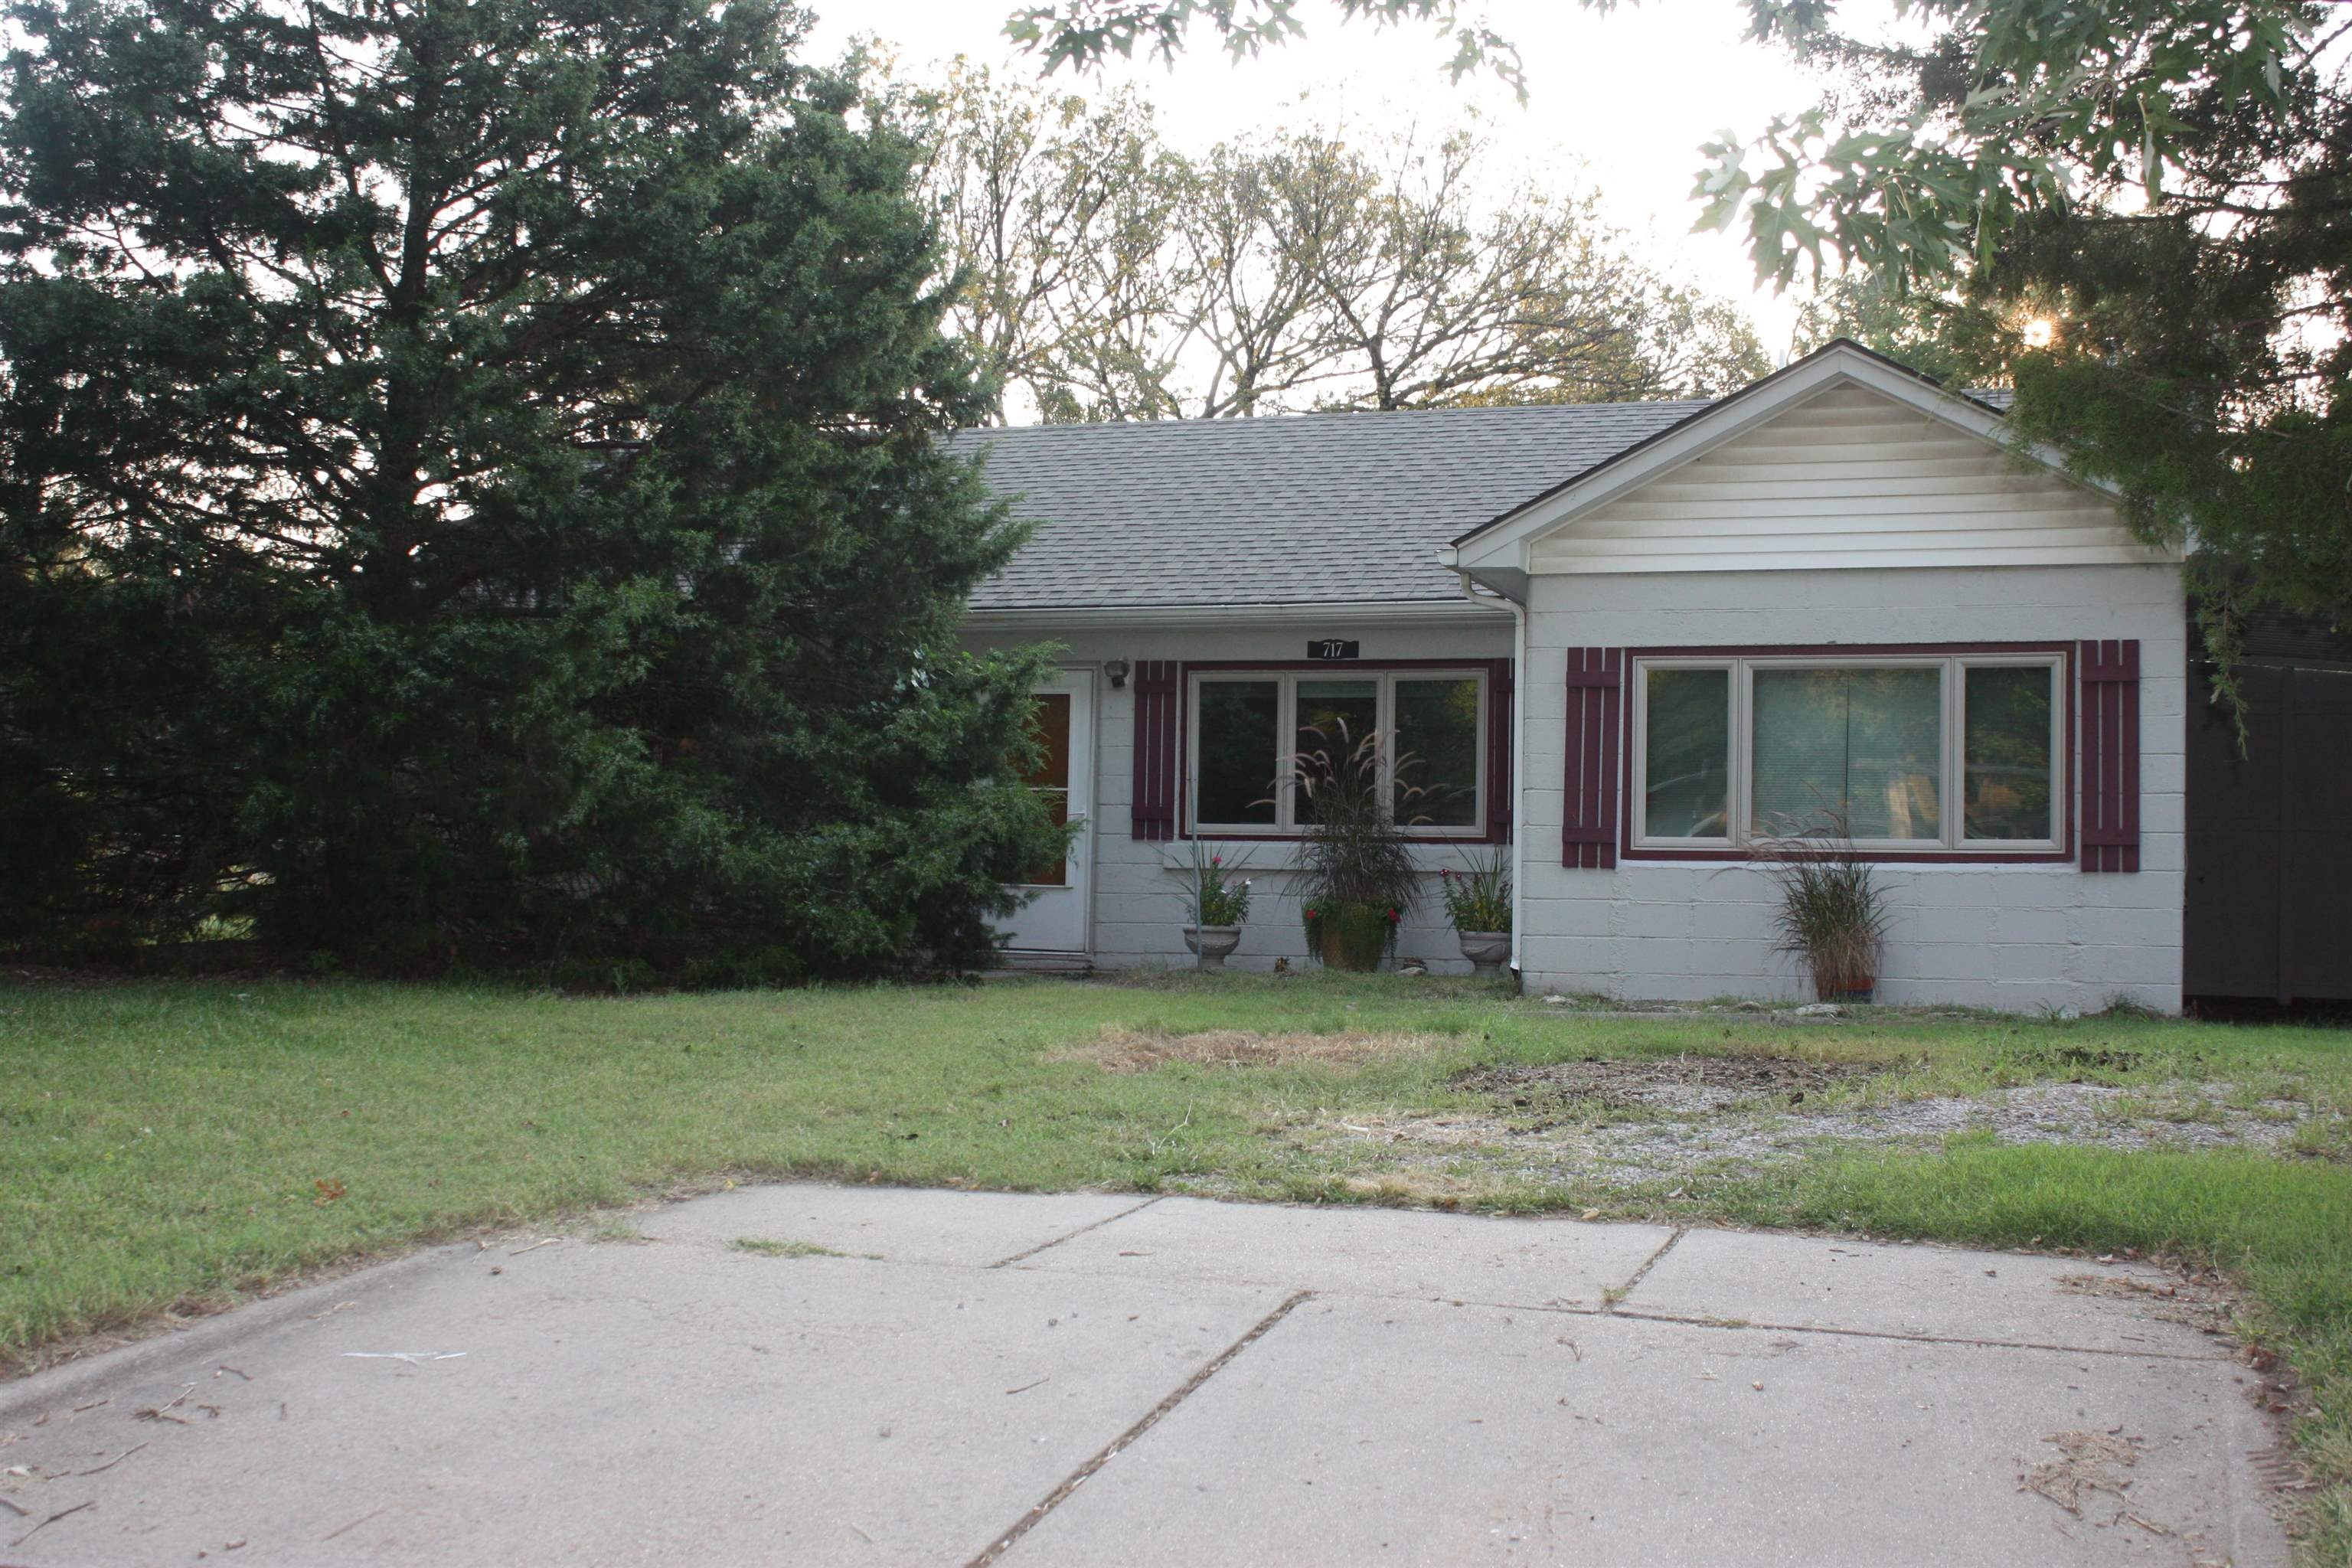 Looking for a nice house with a large lot to build a shop or garage? This is it! Close to Hwy 235 so